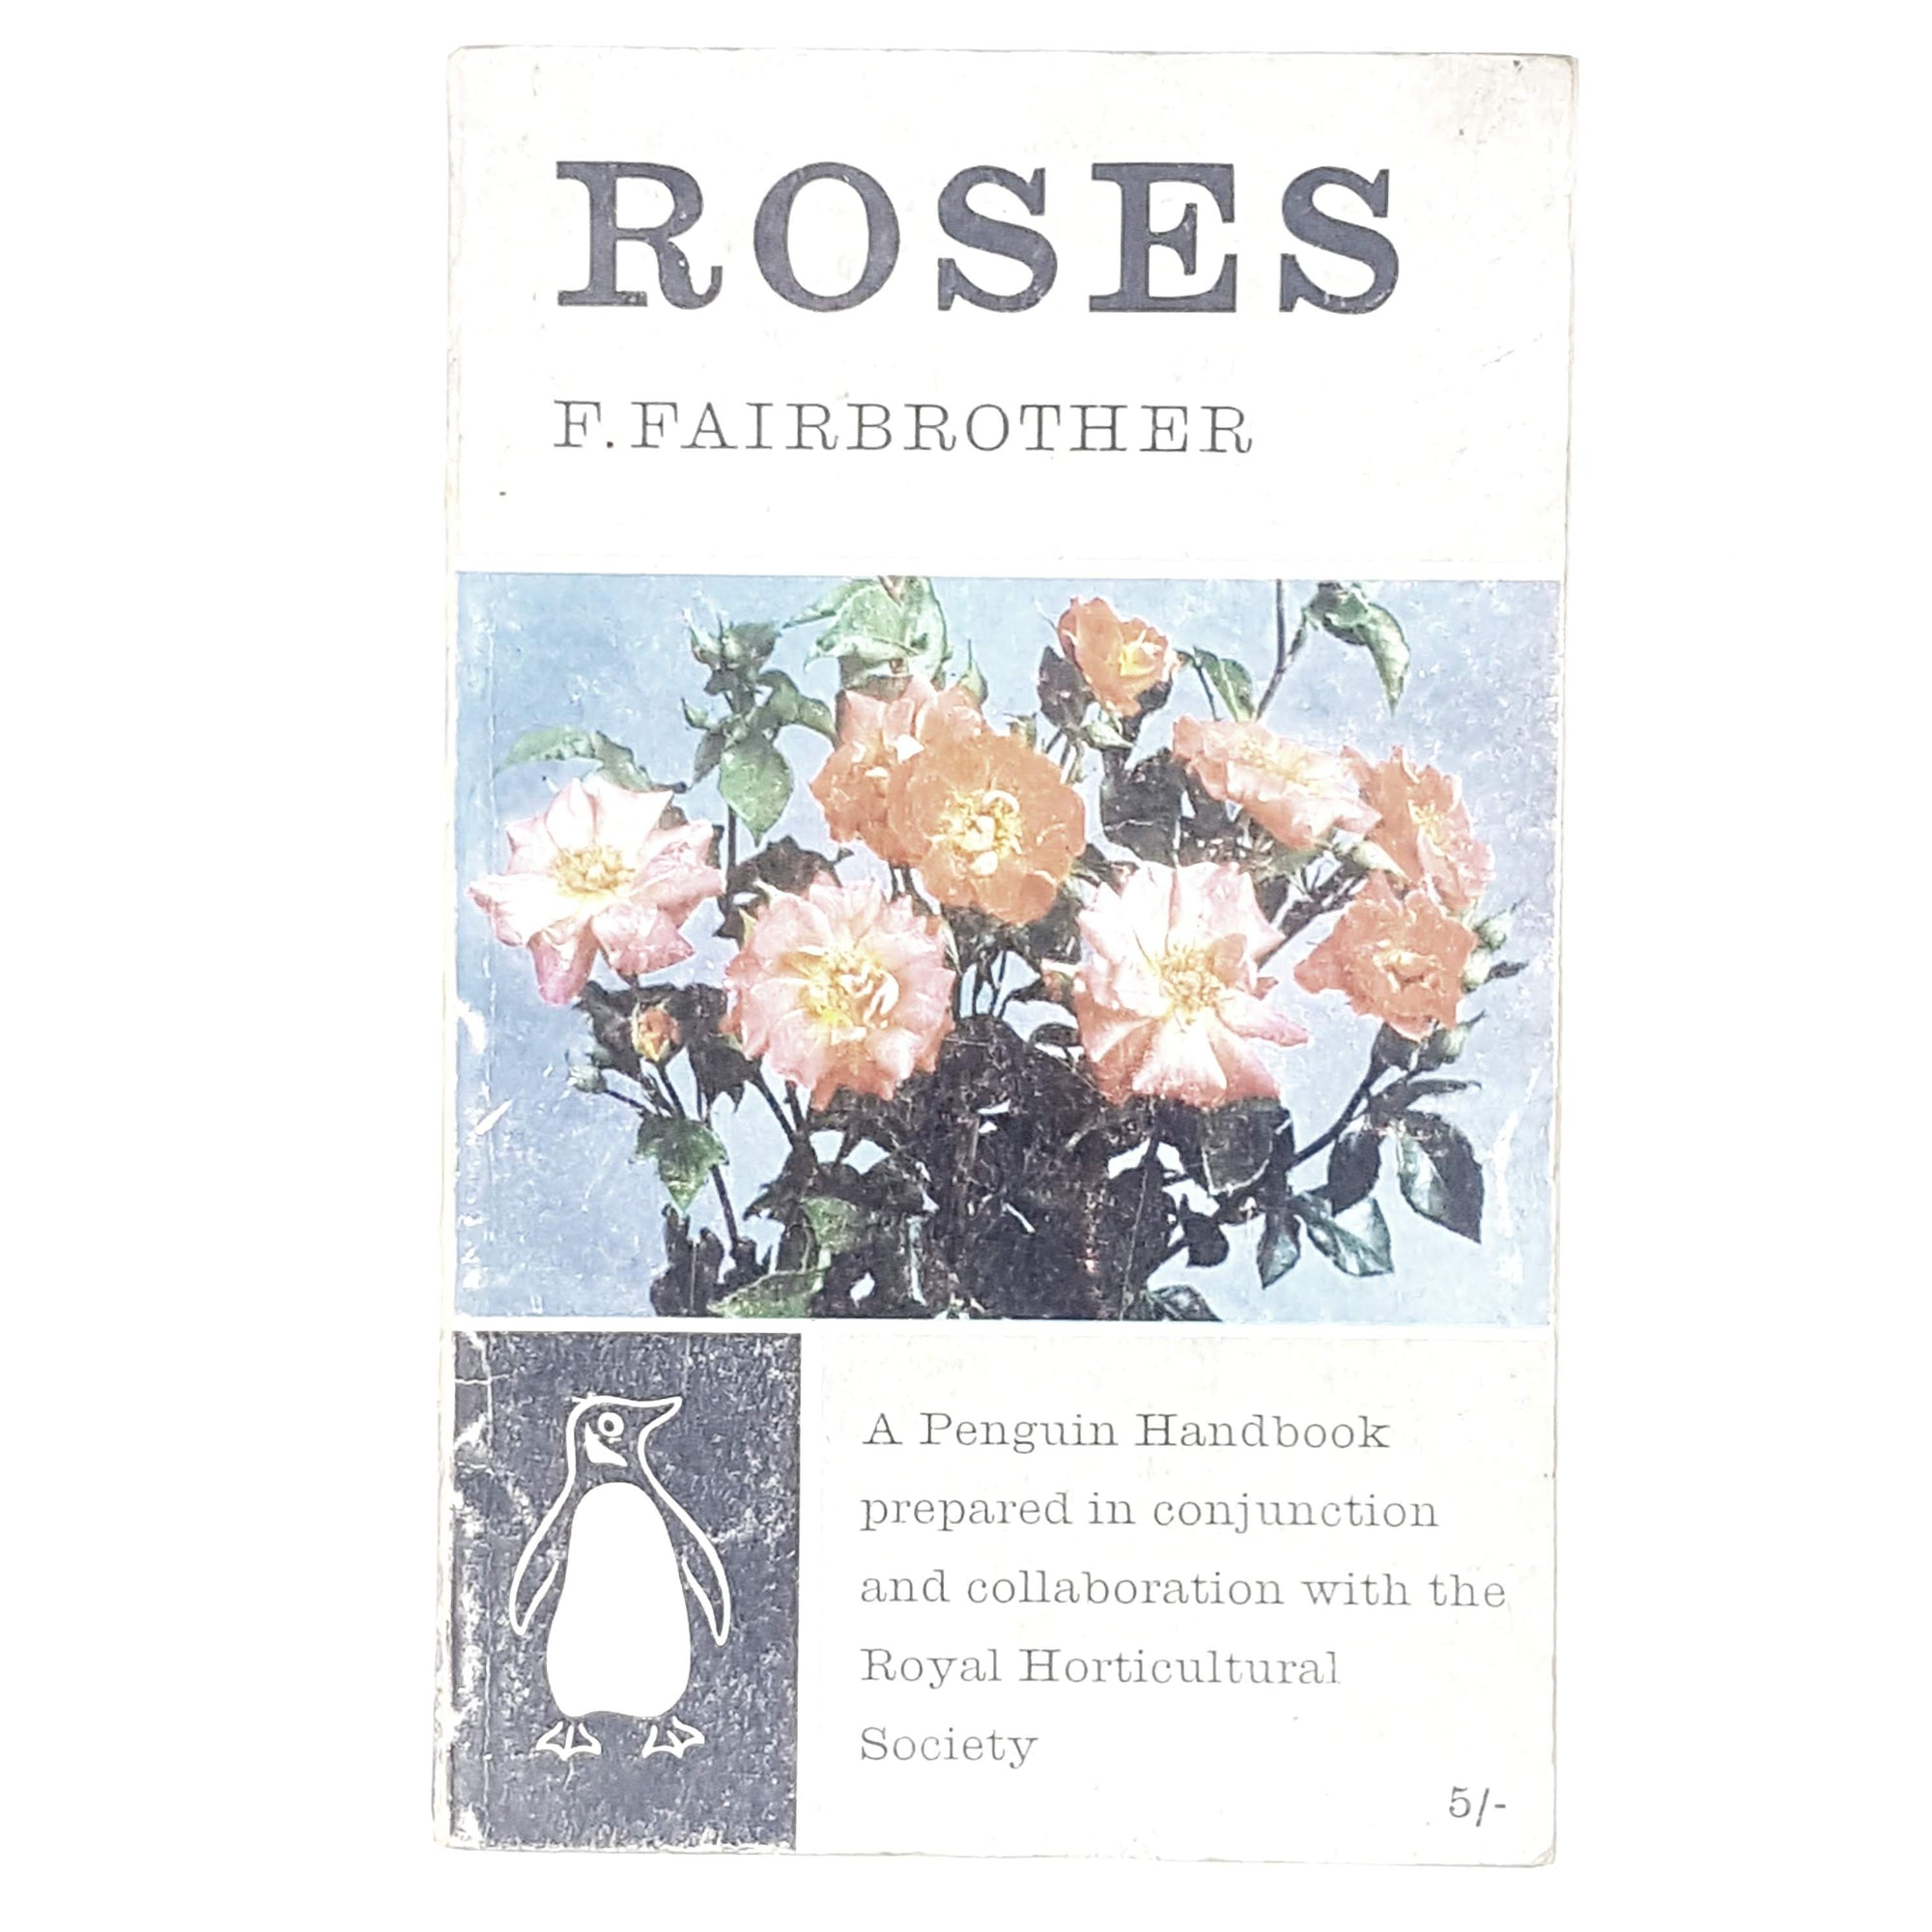 Vintage Penguin Roses by F. Fairbrother 1960